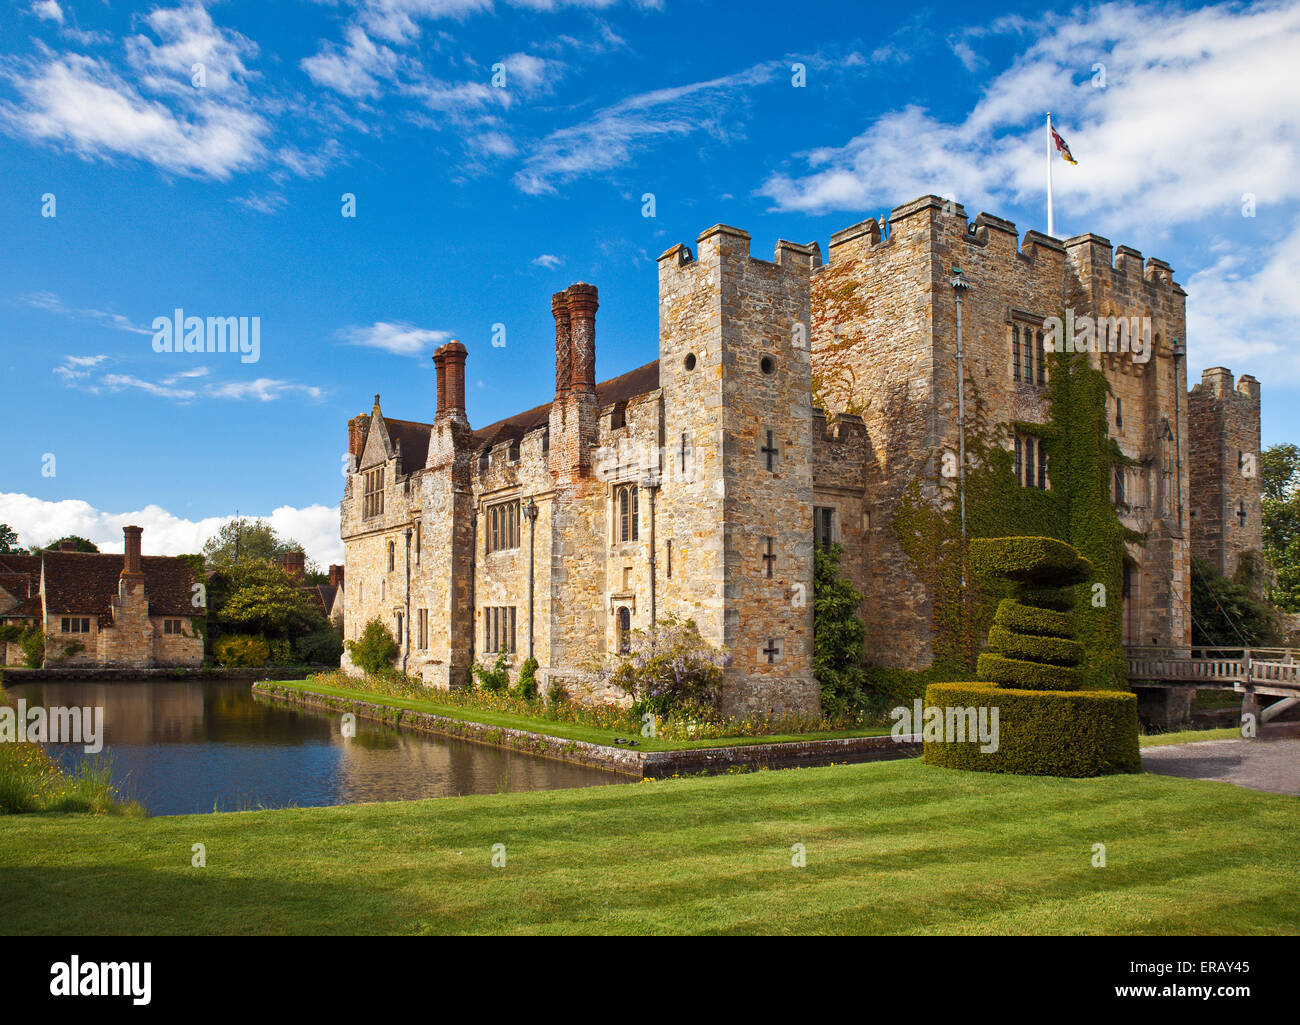 Hever Castle, Kent. - Stock Image